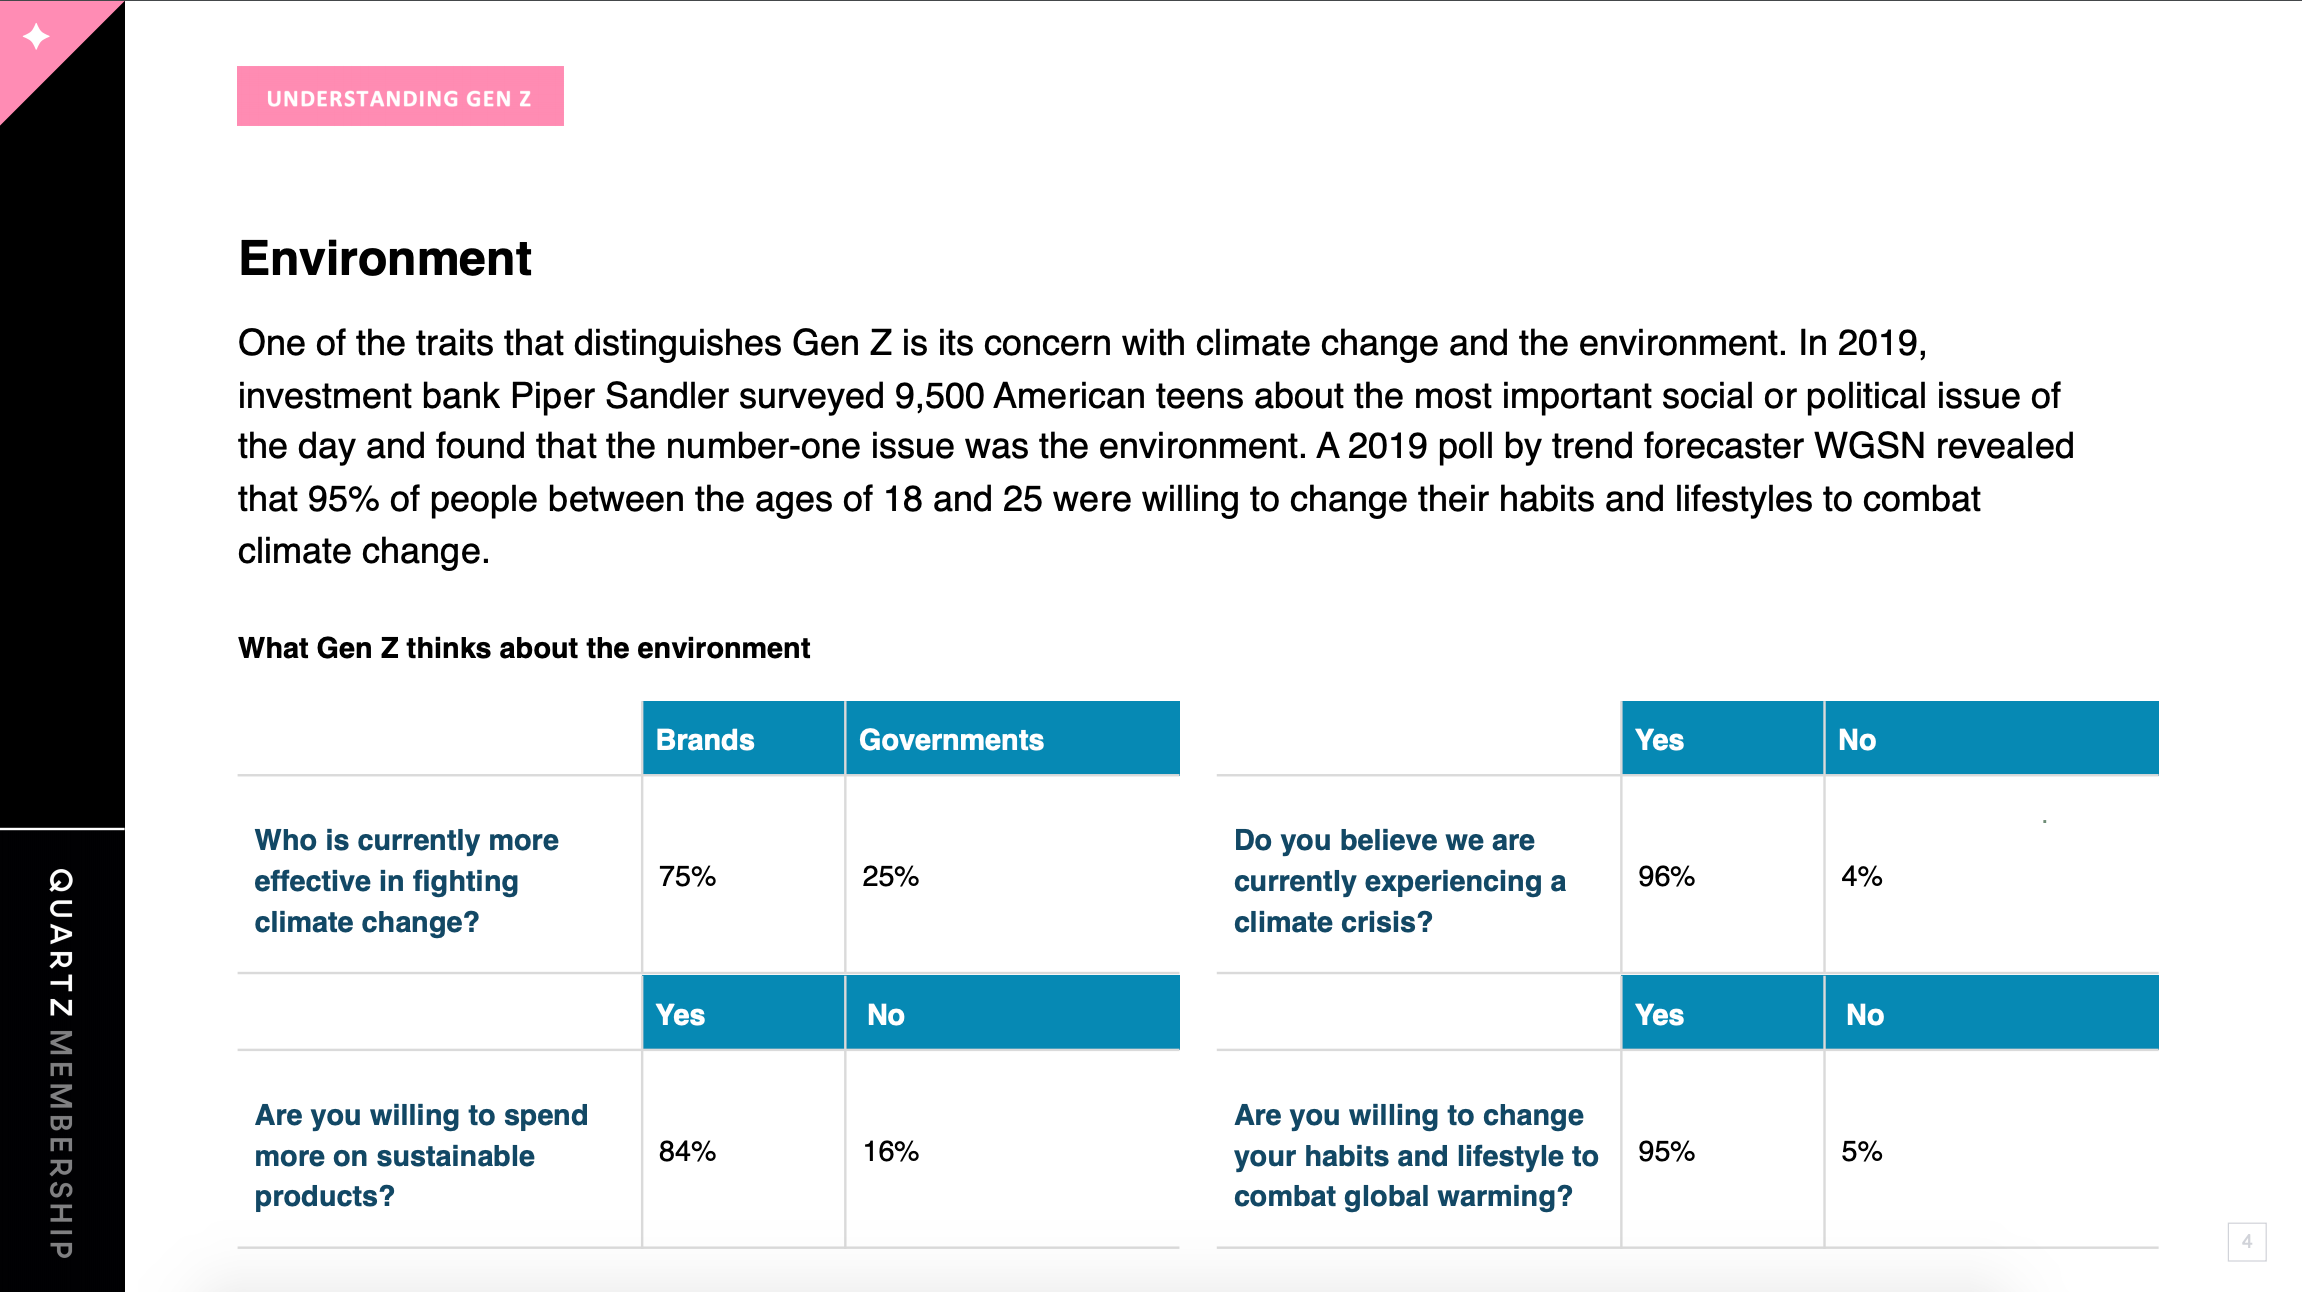 A powerpoint slide showing Gen Z's attitudes toward climate change and the environment.